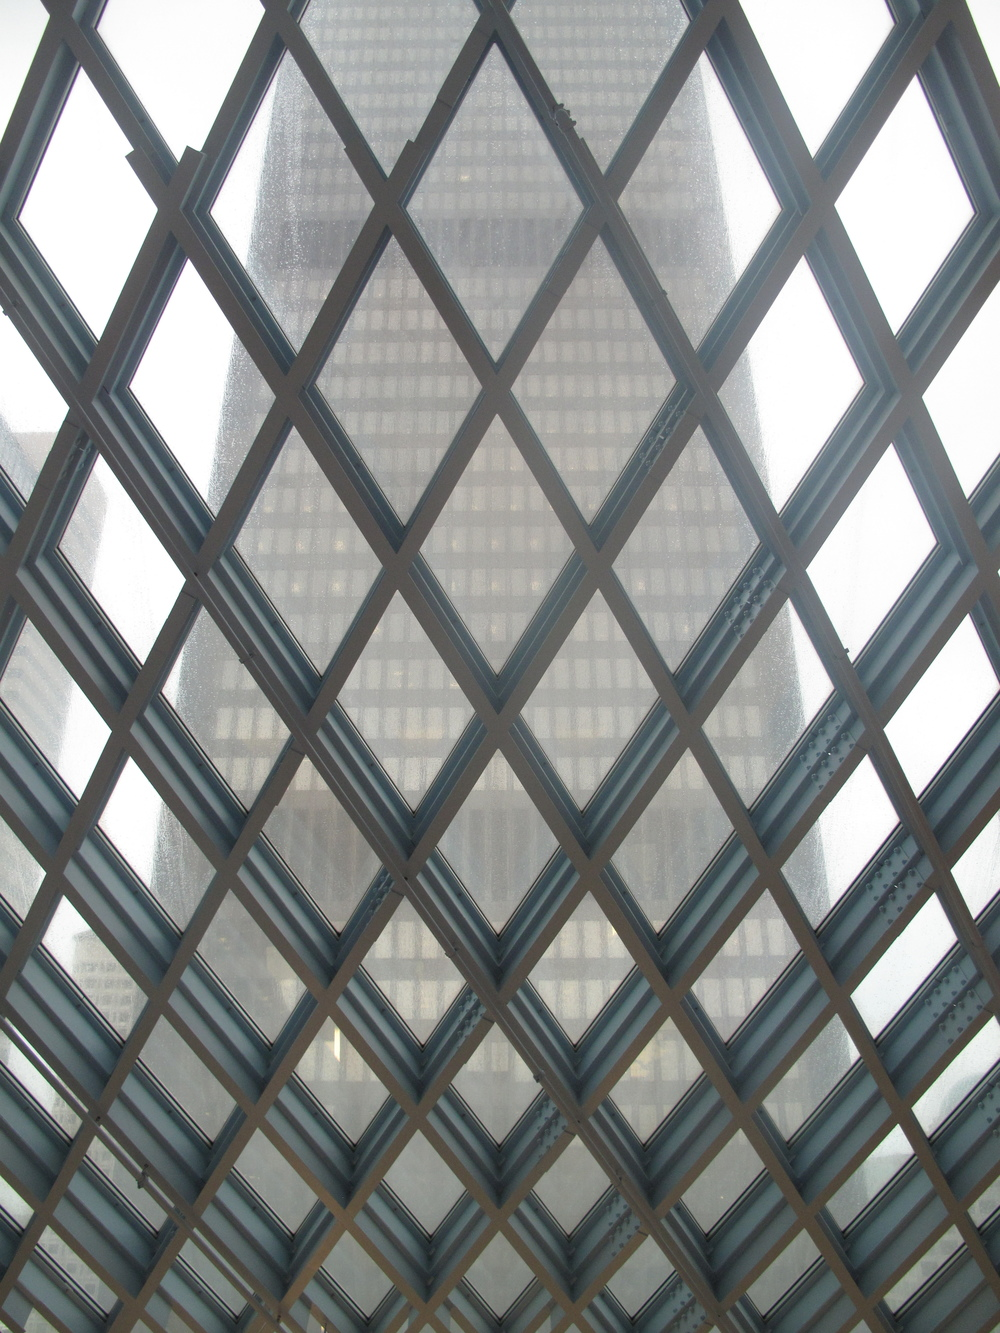 View of a sky rise building from the Seattle Public Library - interesting windows.